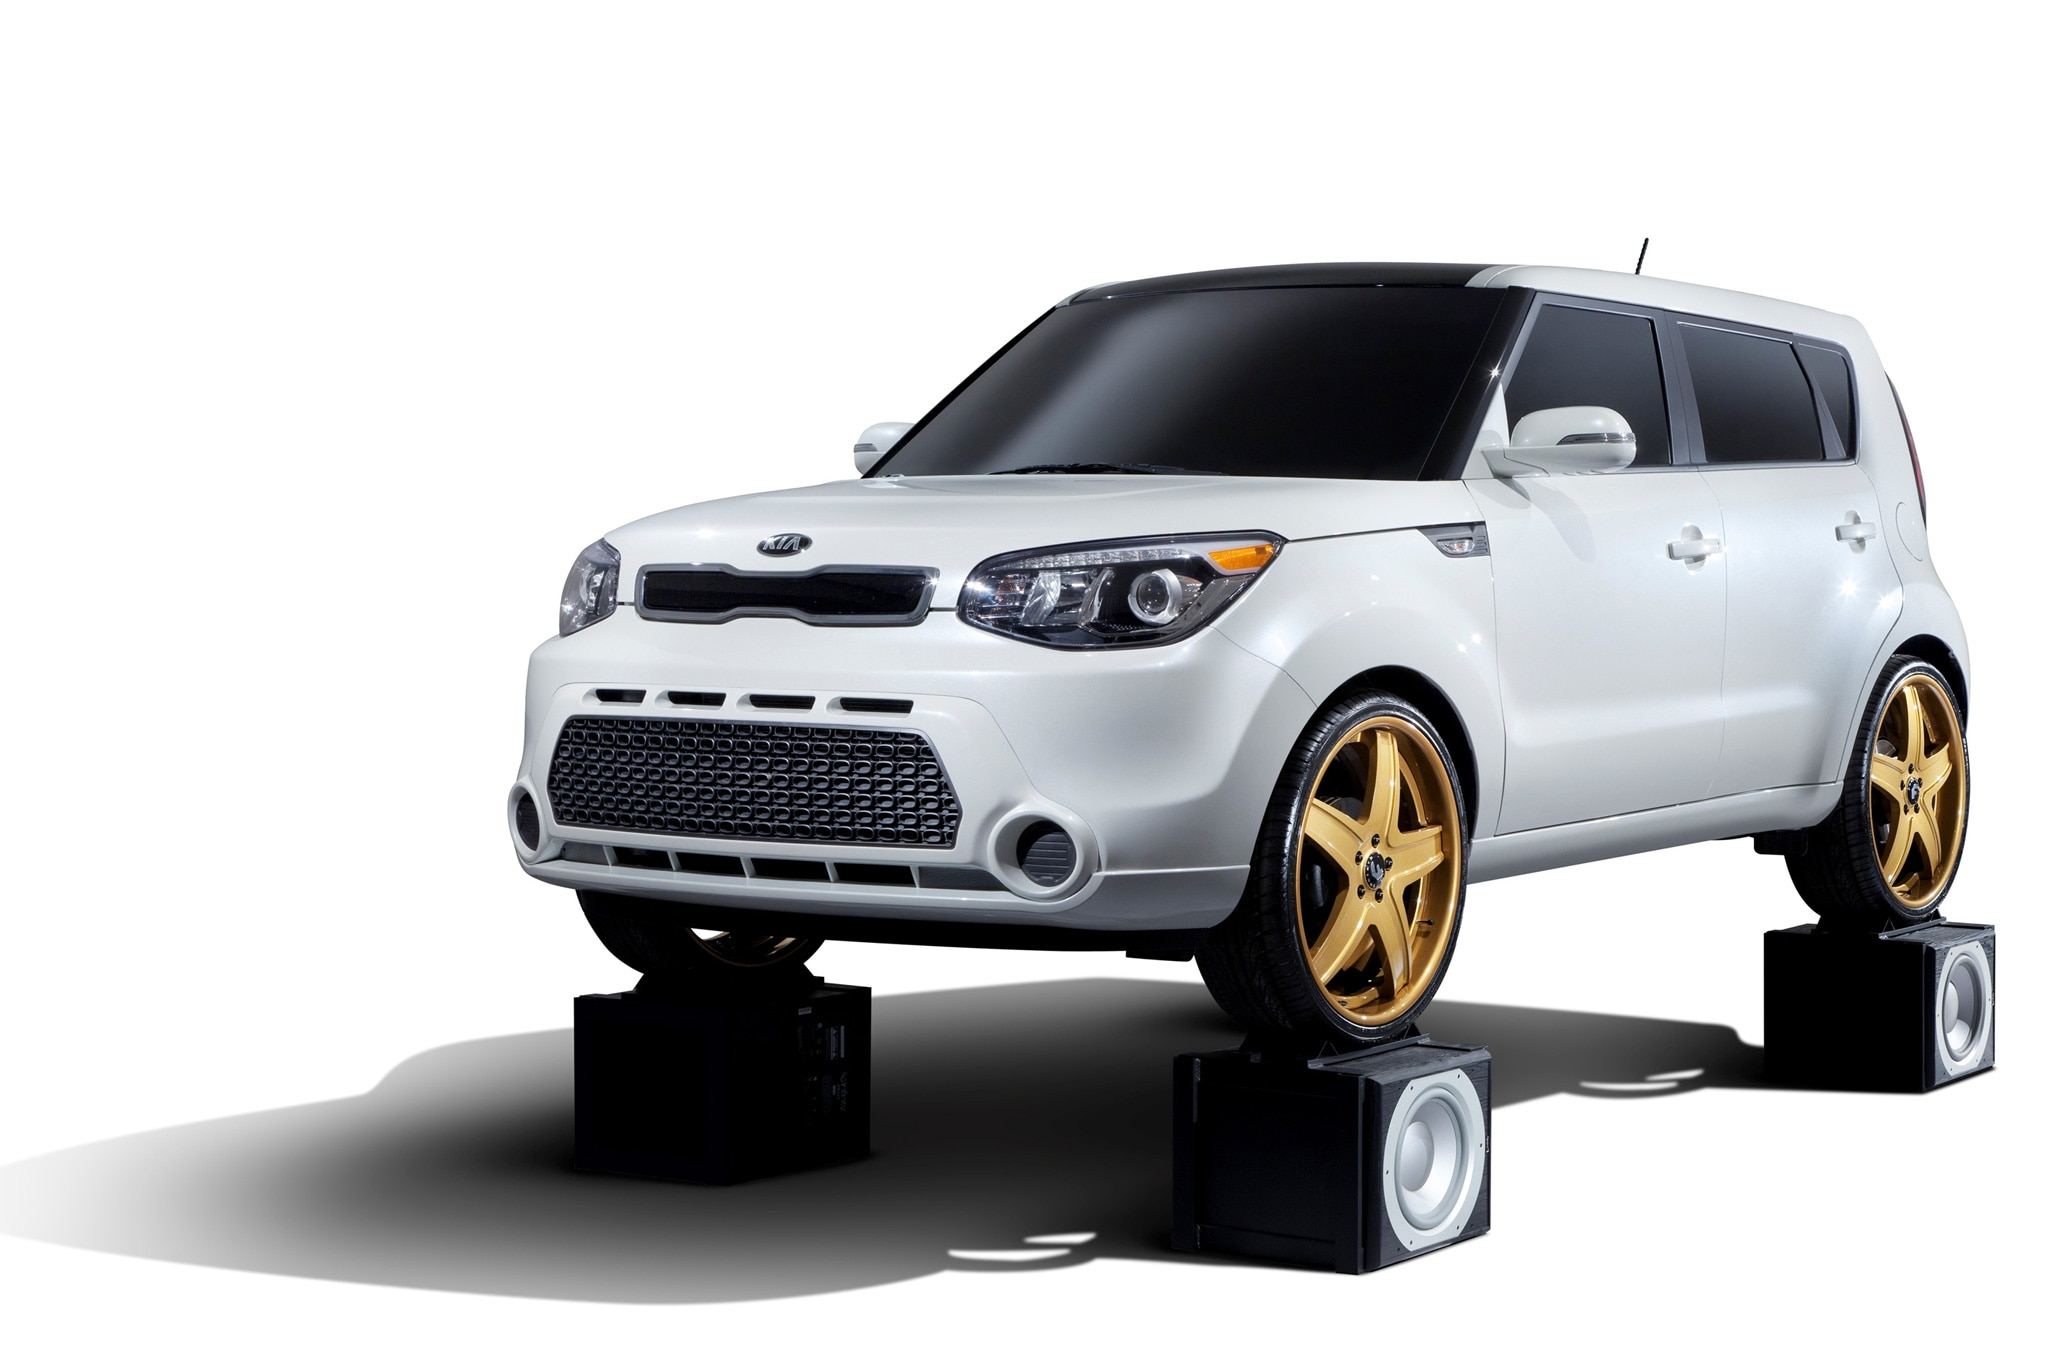 sema 2013 2014 kia soul concepts feel the music. Black Bedroom Furniture Sets. Home Design Ideas